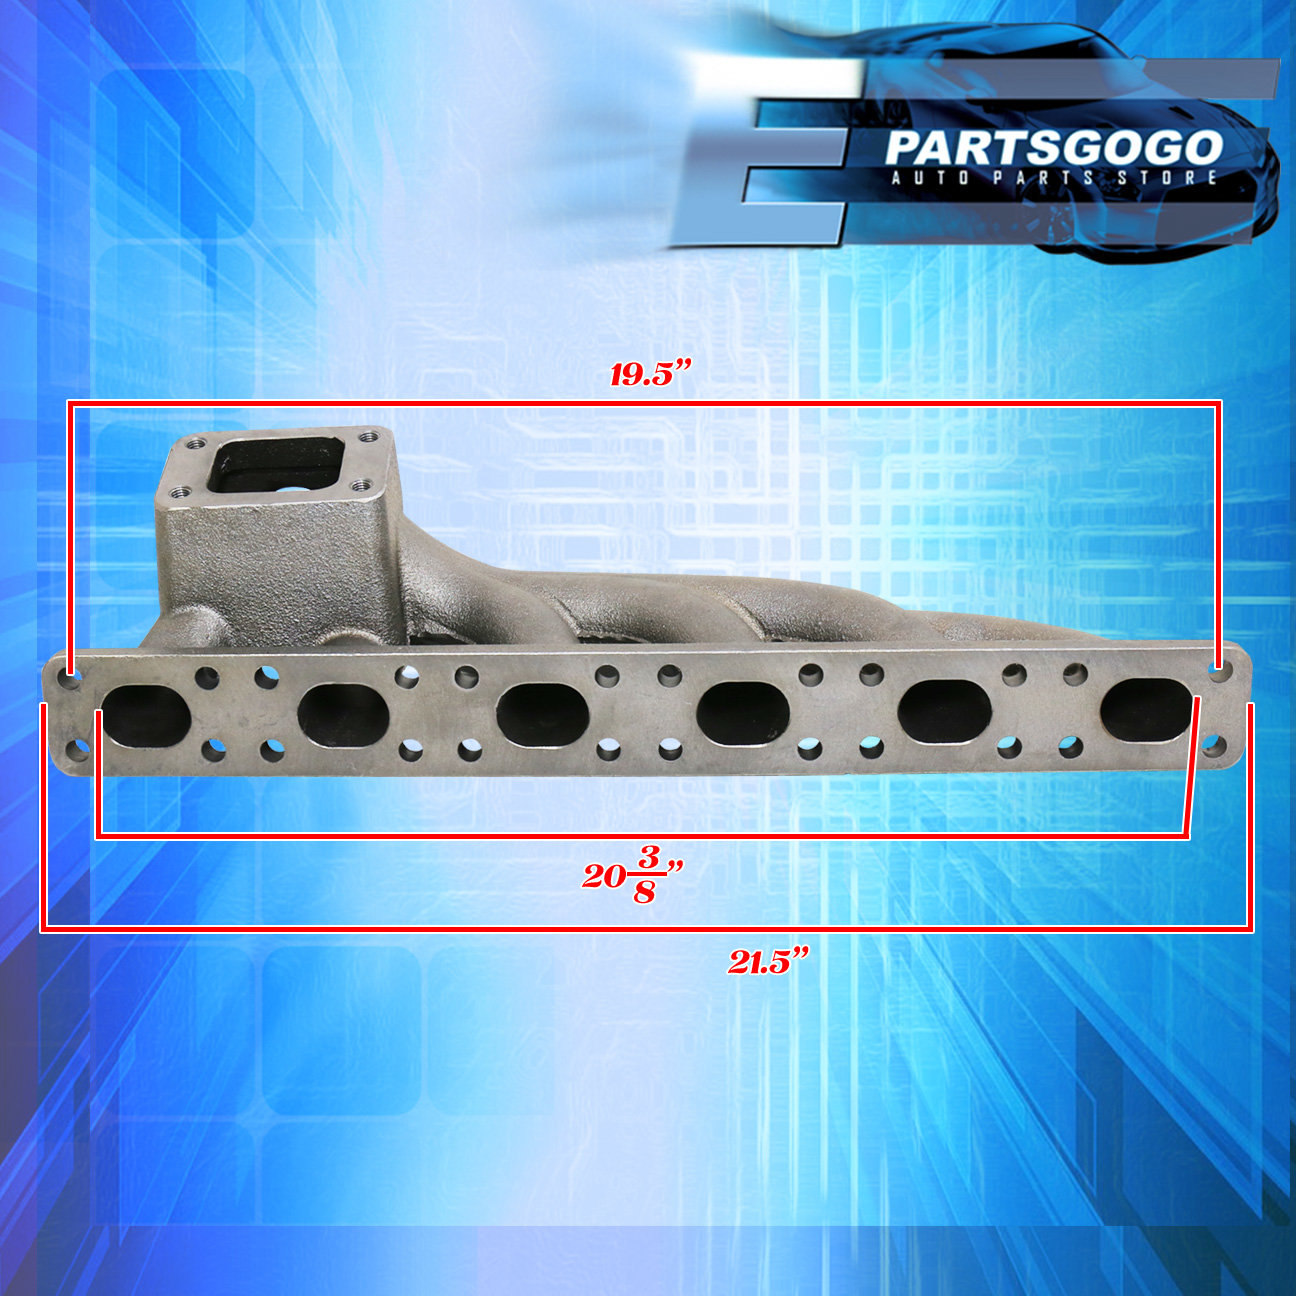 1999 Bmw E36 M3 Turbo Kit: Cast Iron Turbo Manifold Boost Exhaust For 92-99 BMW E36